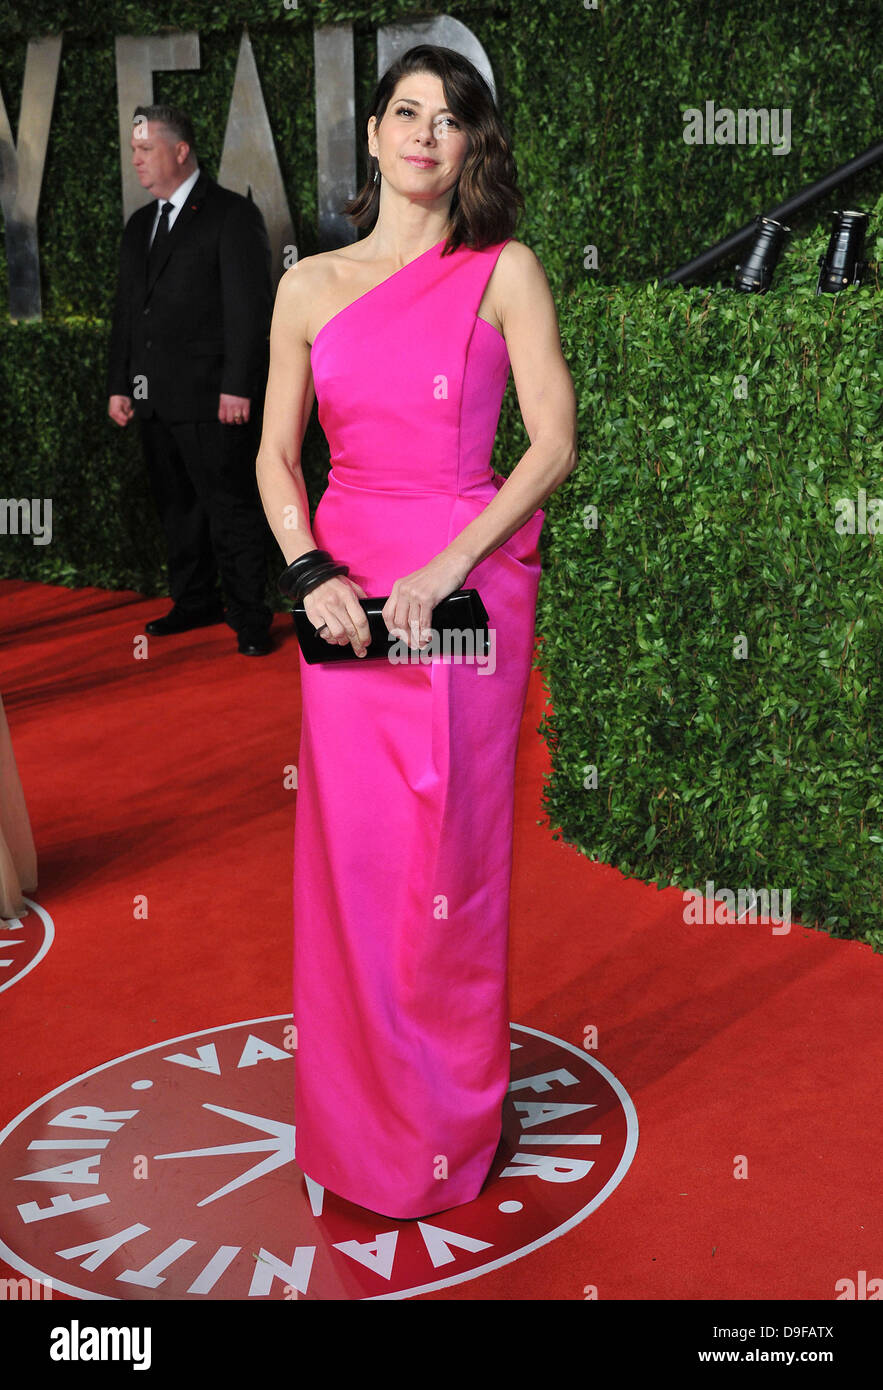 Marisa Tomei 2011 Vanity Fair Oscar Party at Sunset Tower Hotel - Arrivals West Hollywood, California - 27.02.11 - Stock Image